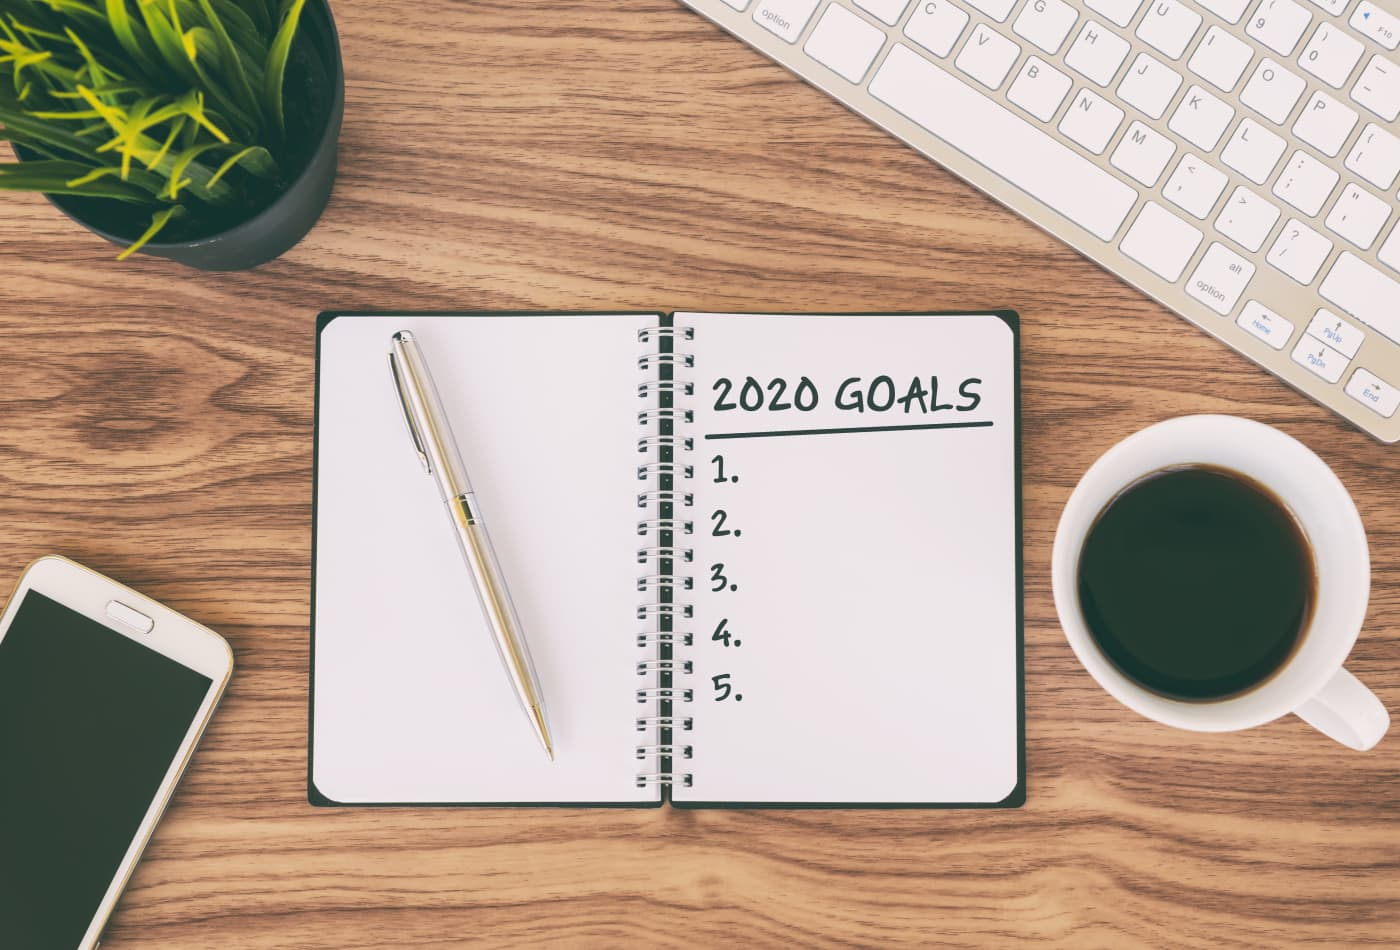 10 financial New Year's resolutions to set now and achieve in 2020